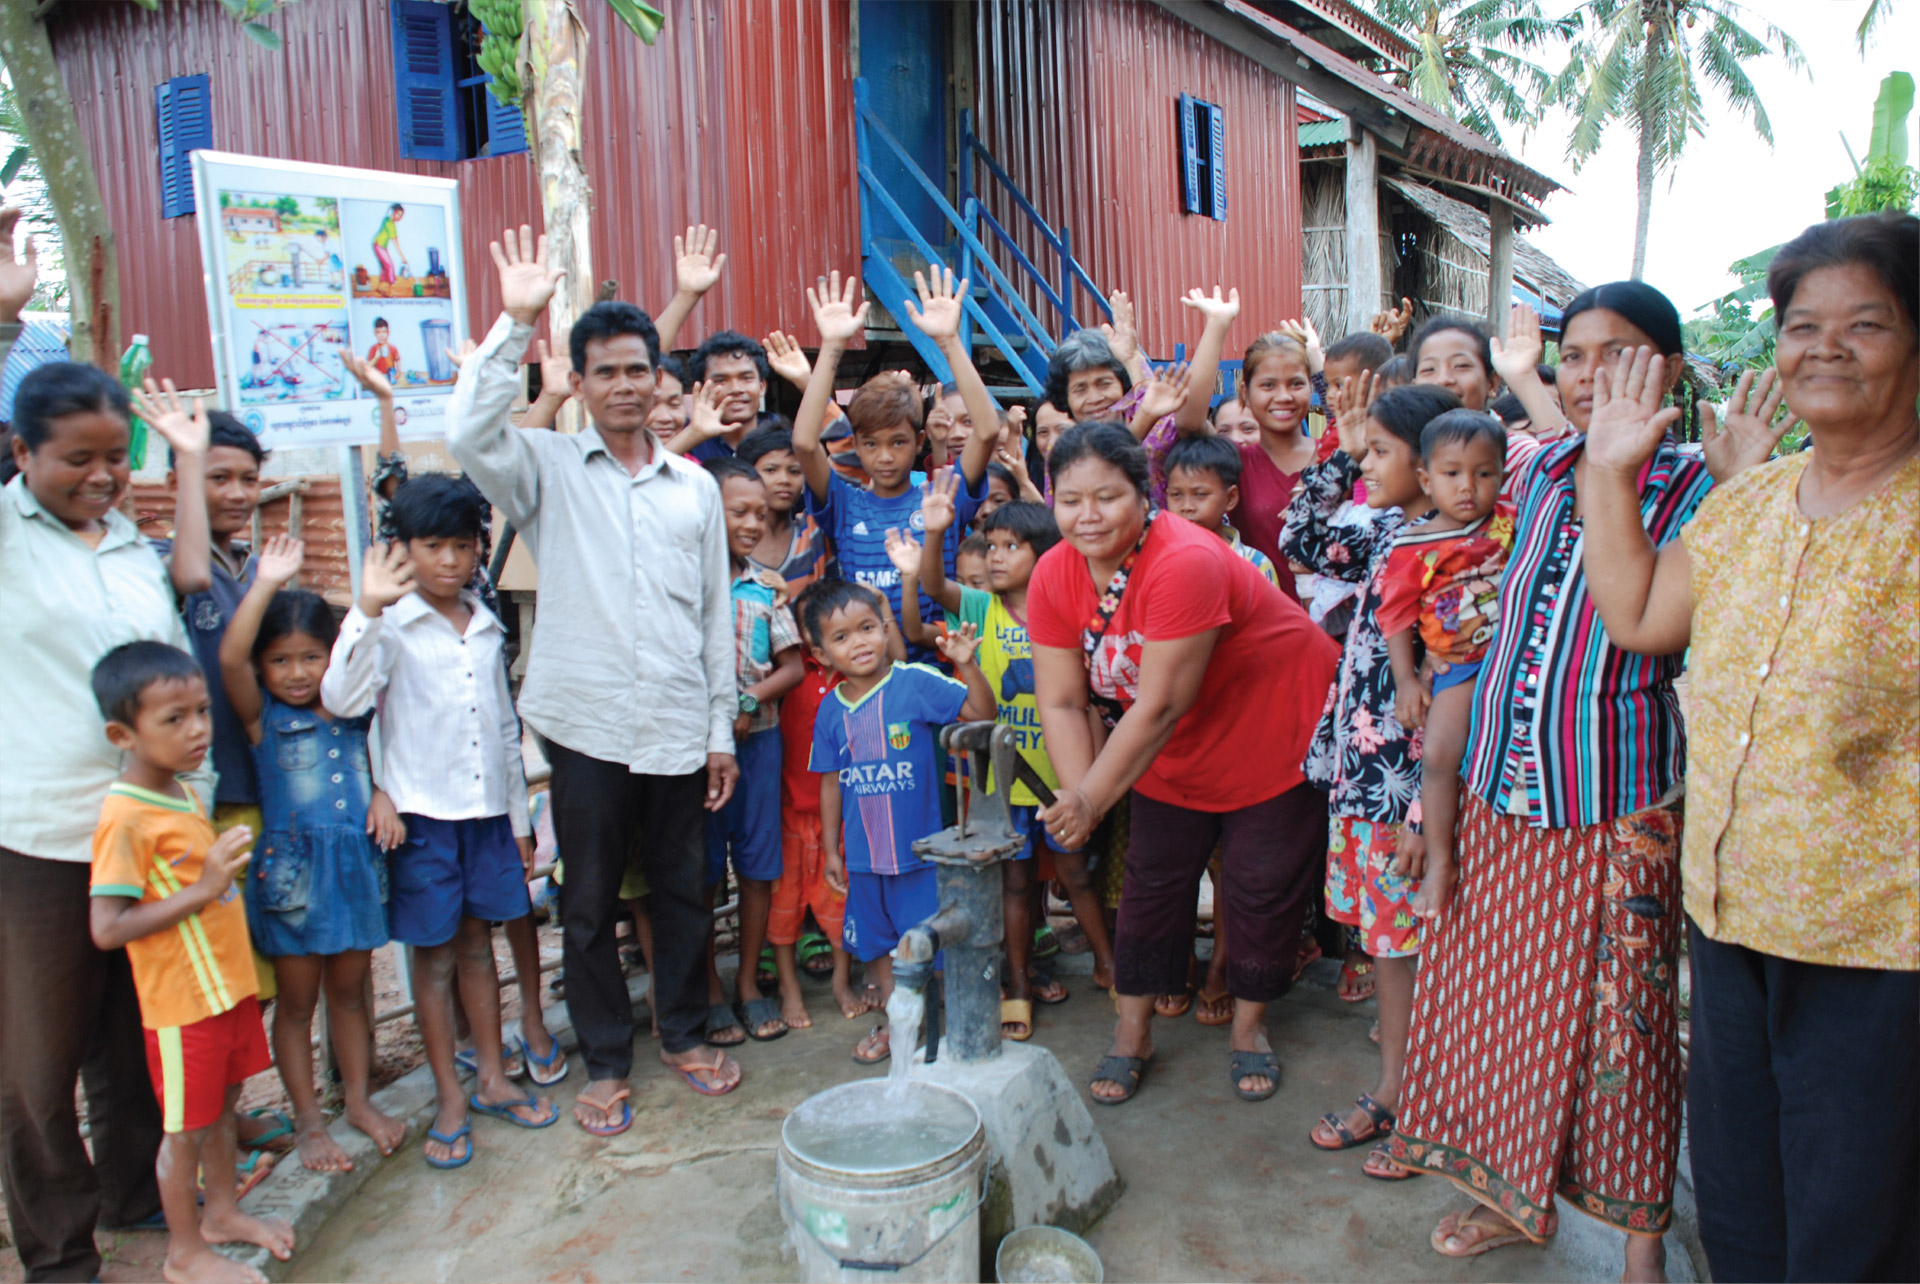 People at Water Pump: Lotus Outreach International